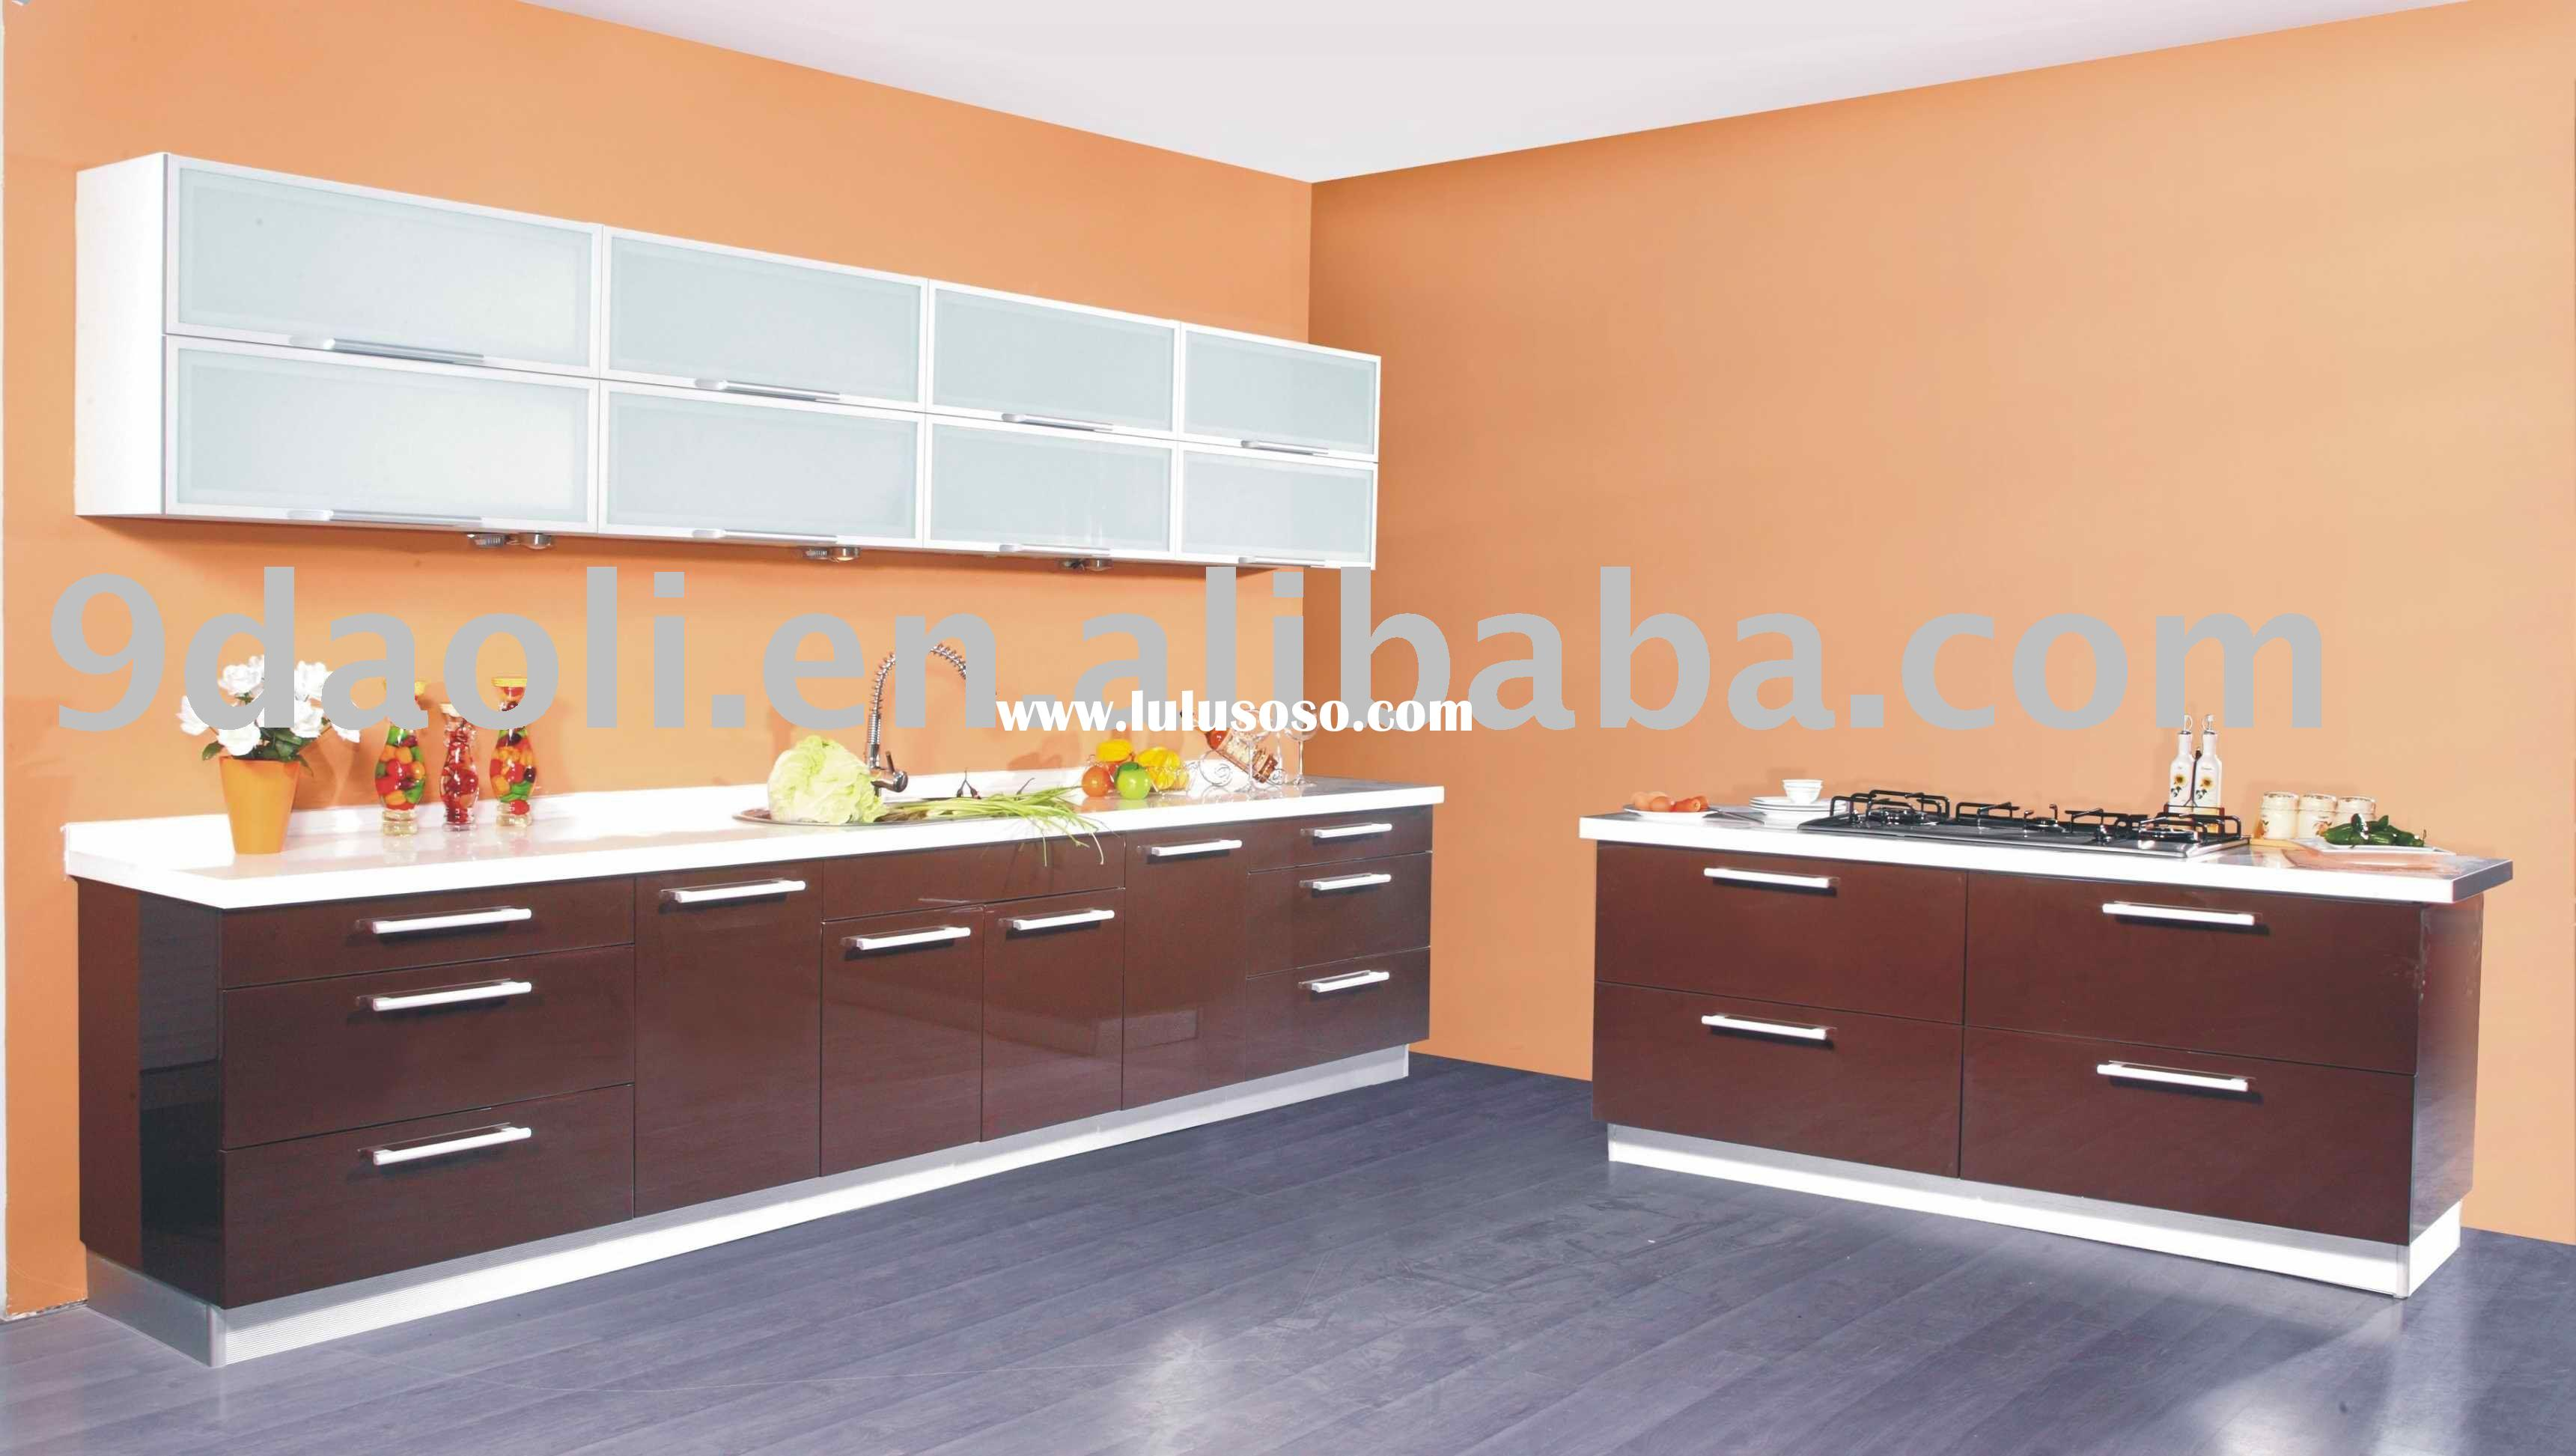 Ocean Blue Kitchen Cabinet For Sale Price China Manufacturer Supplier 1571311